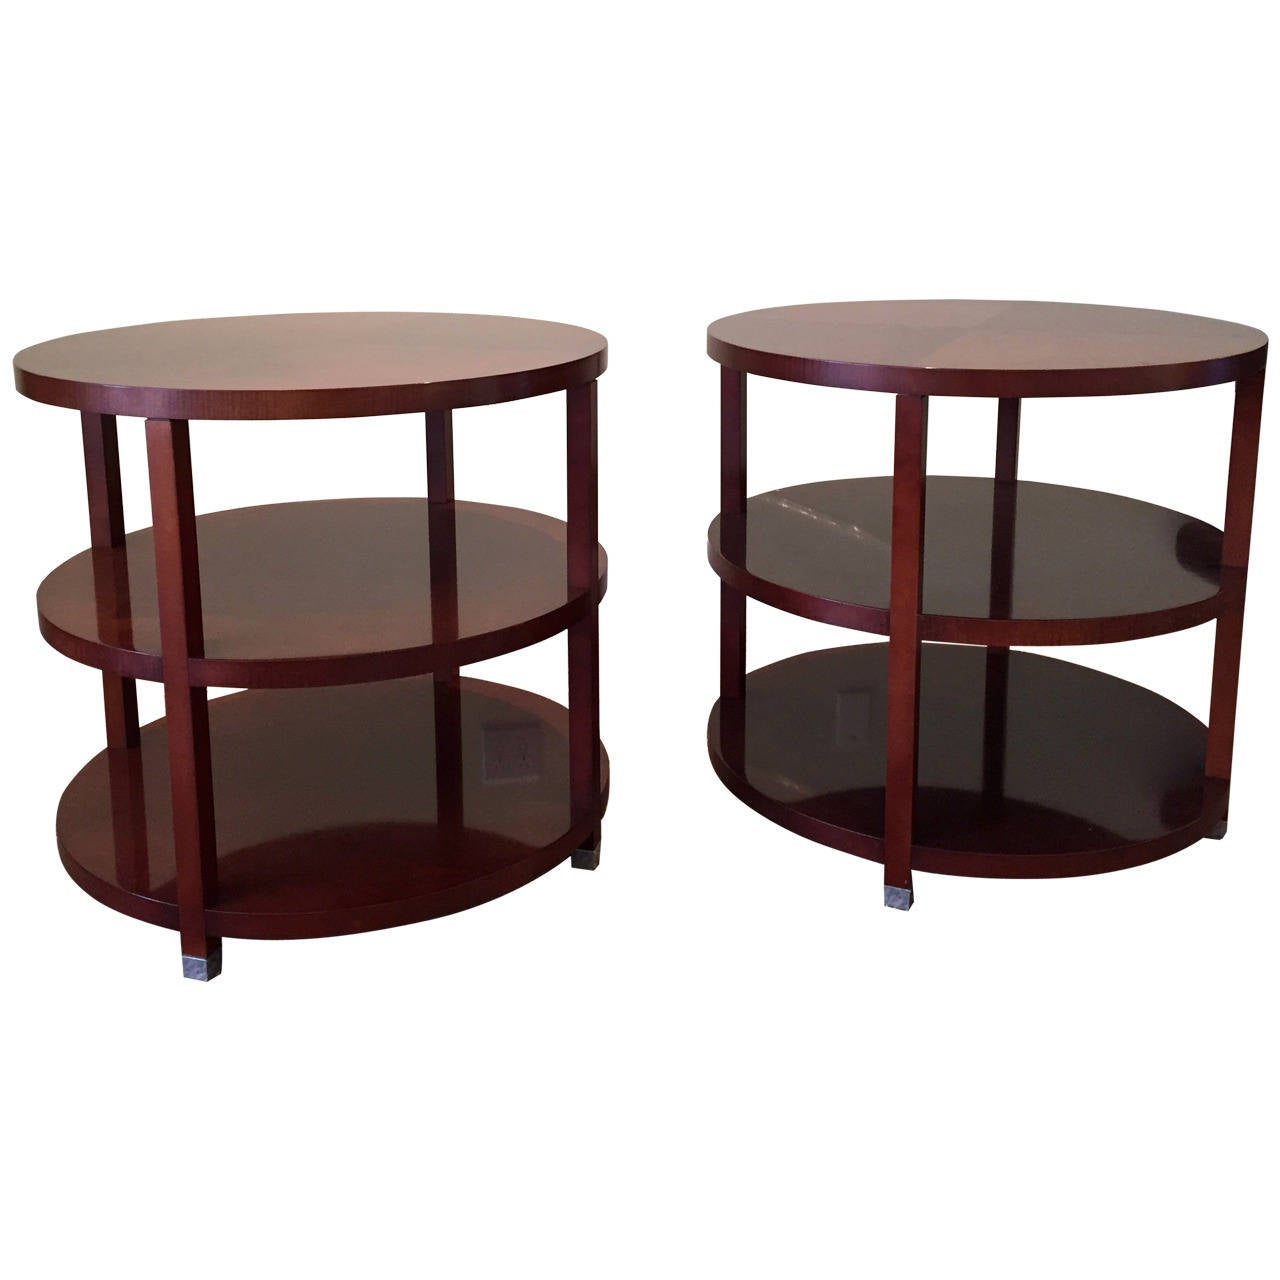 pair of barbara barry for baker round tiered end tables for sale at 1stdibs. Black Bedroom Furniture Sets. Home Design Ideas